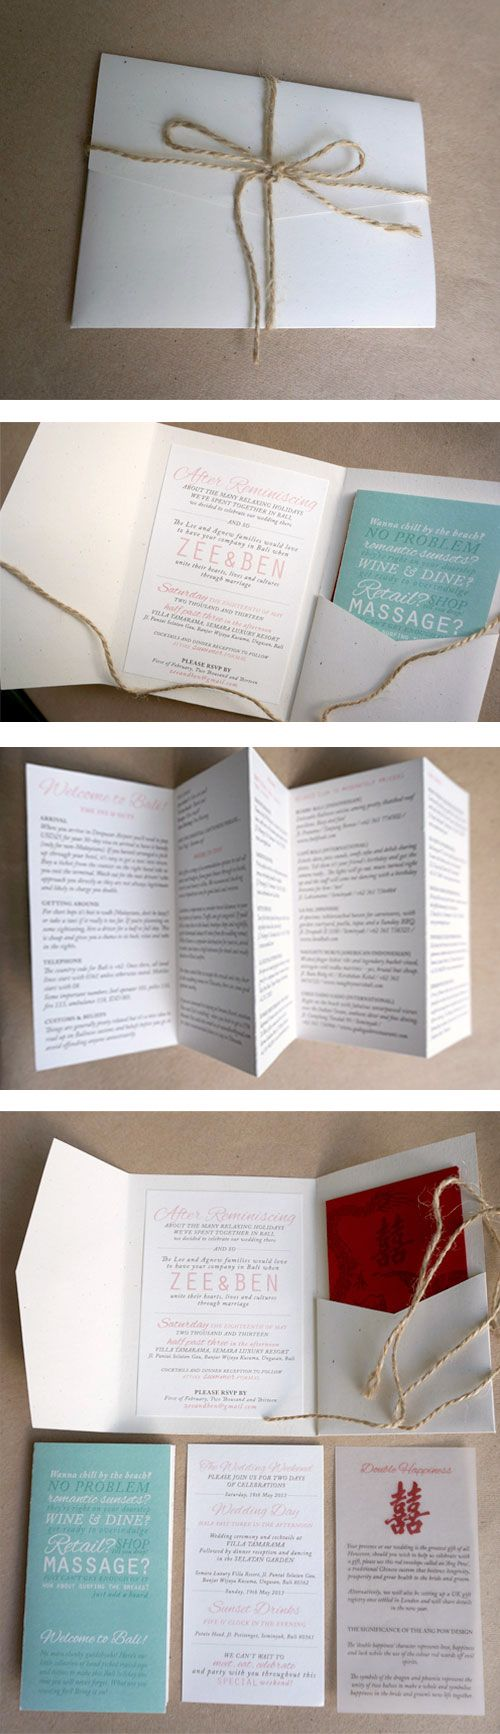 my destination beach wedding invite with guide book + traditional ang pow